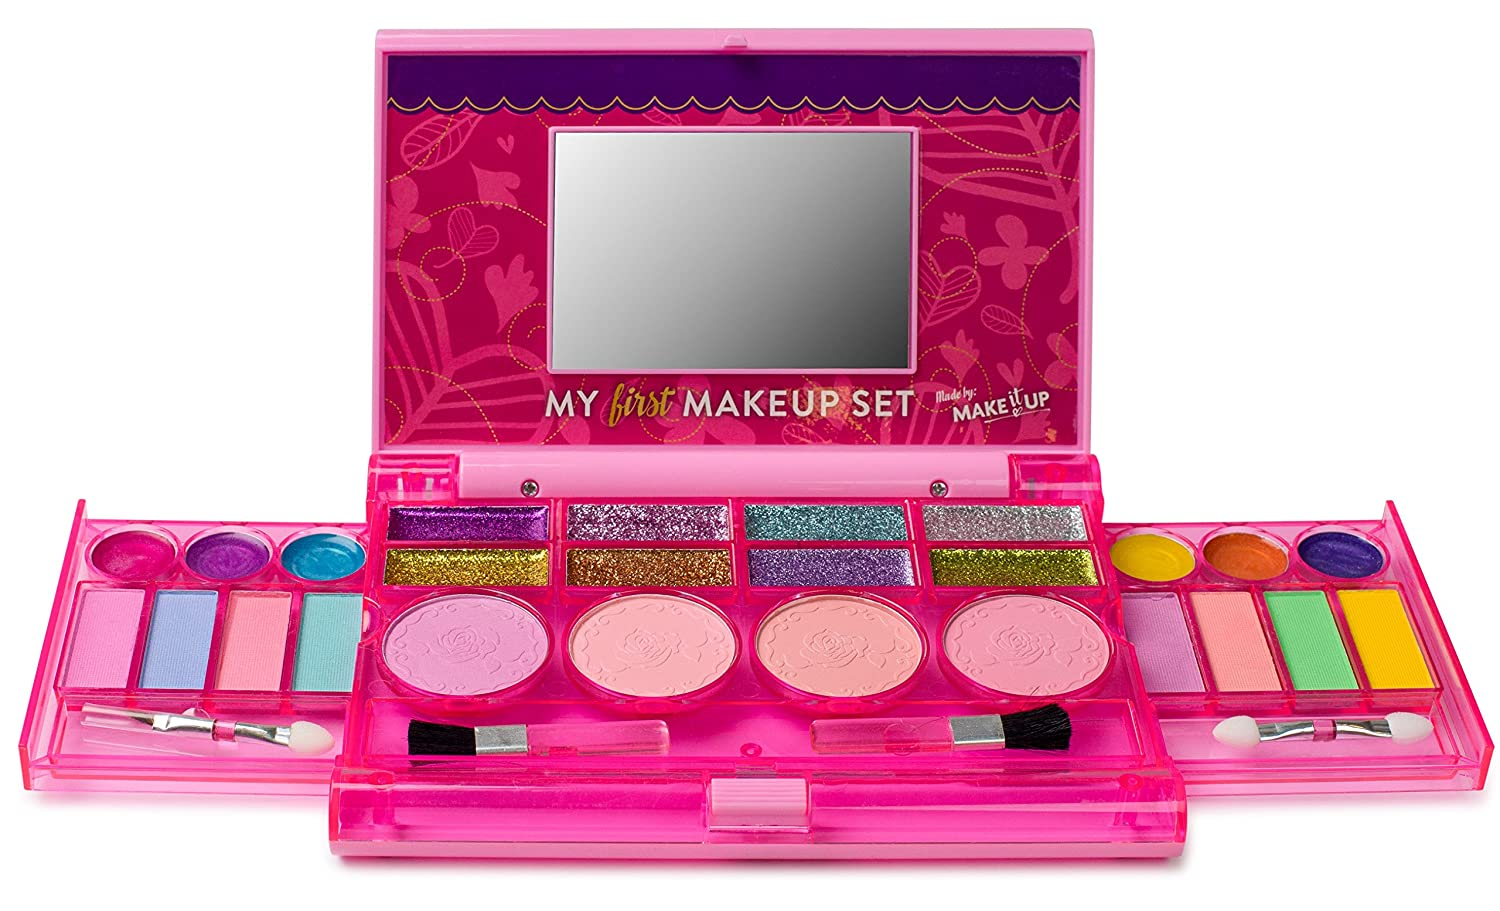 makeup kits for little girls. this makeup kits for little girls